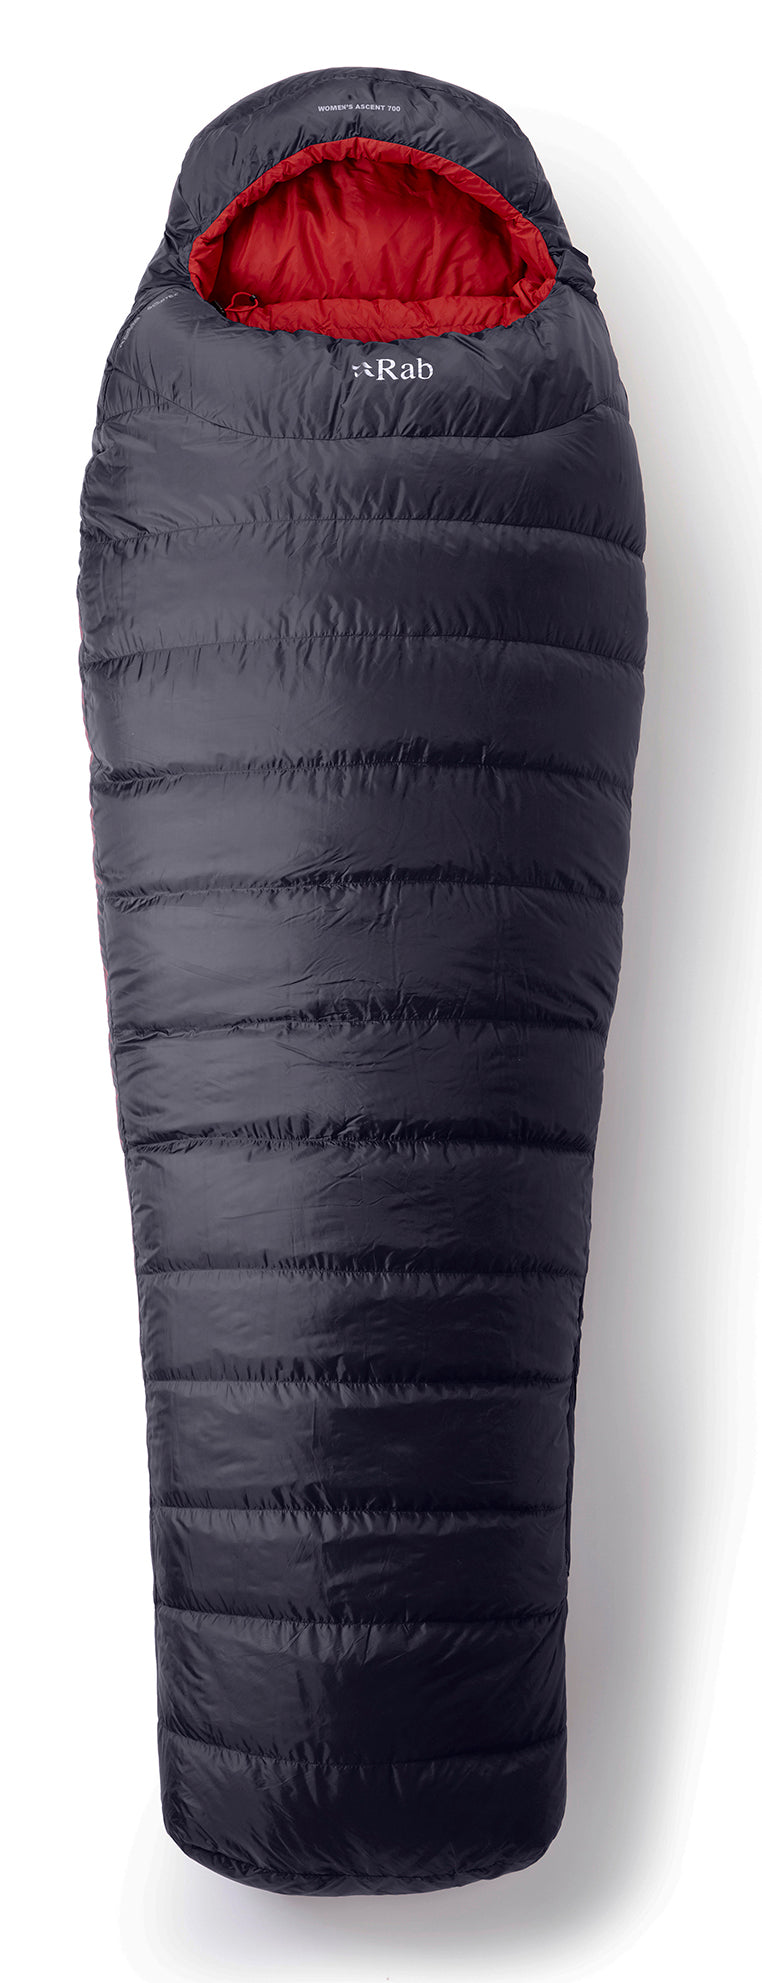 Rab Ascent 700 W (Womens) Sleeping Bag